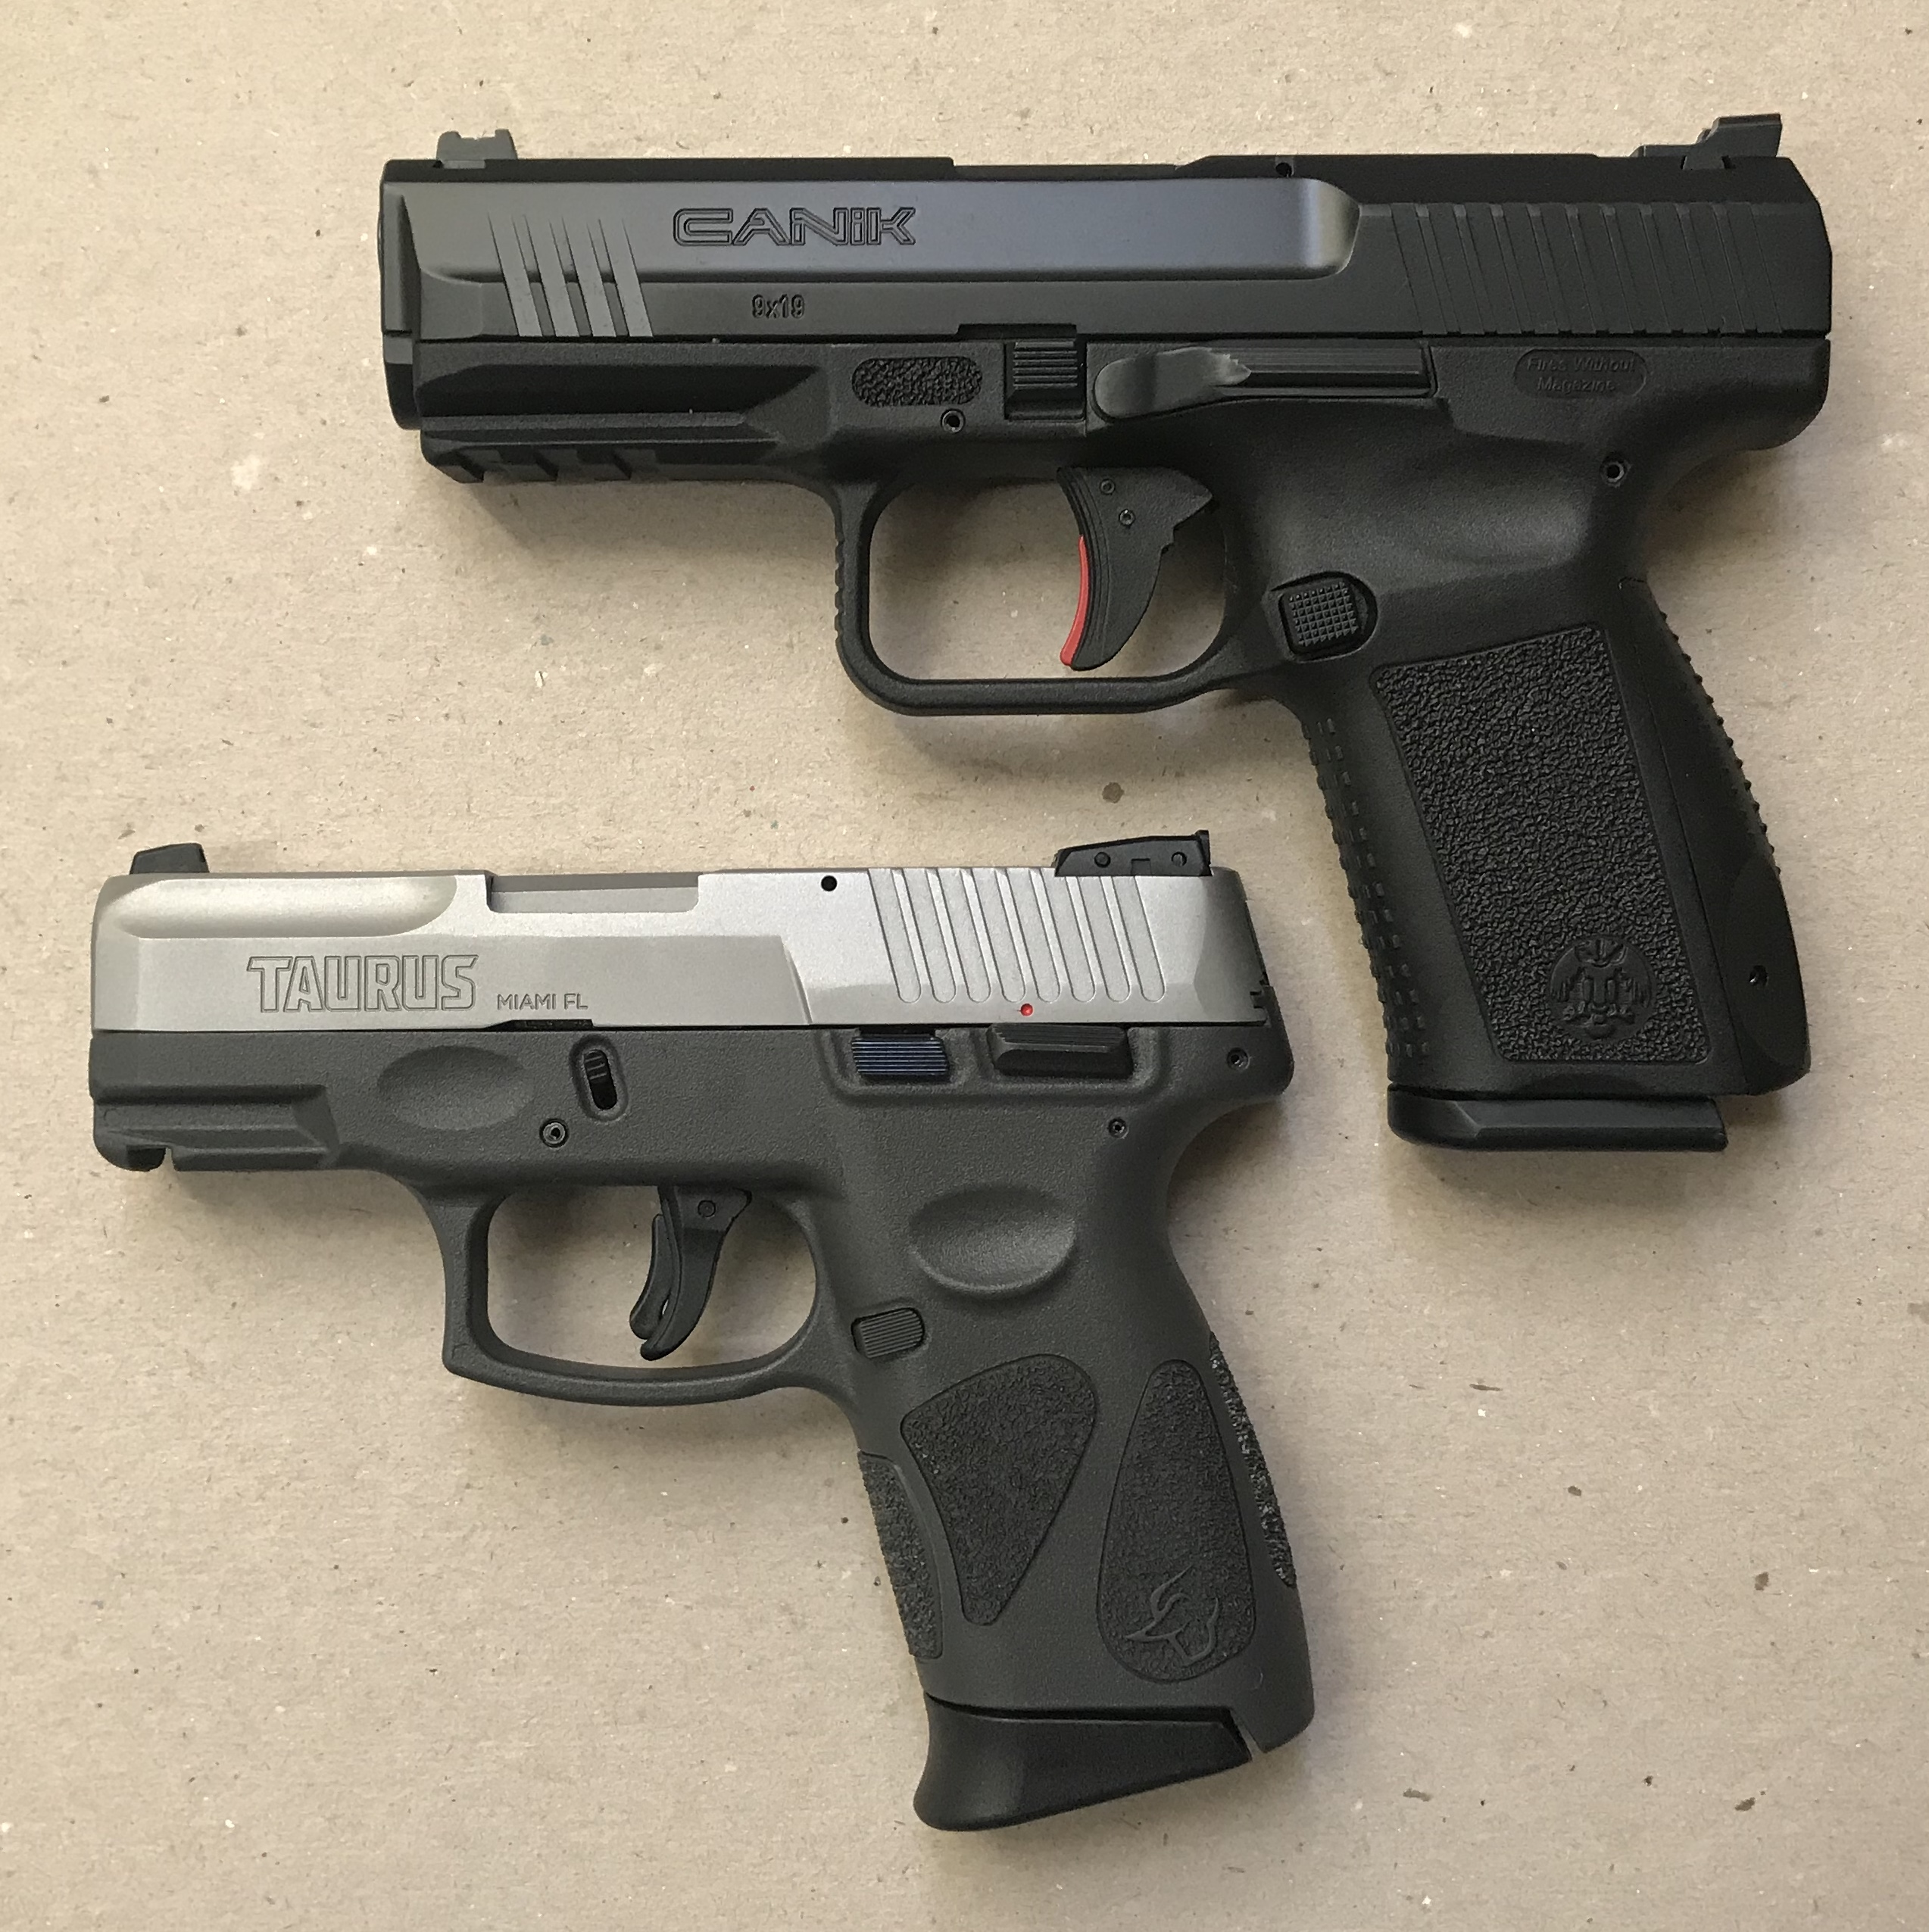 What do you carry?-0dab2071-f4c8-4302-871d-ea31b8853517.jpeg